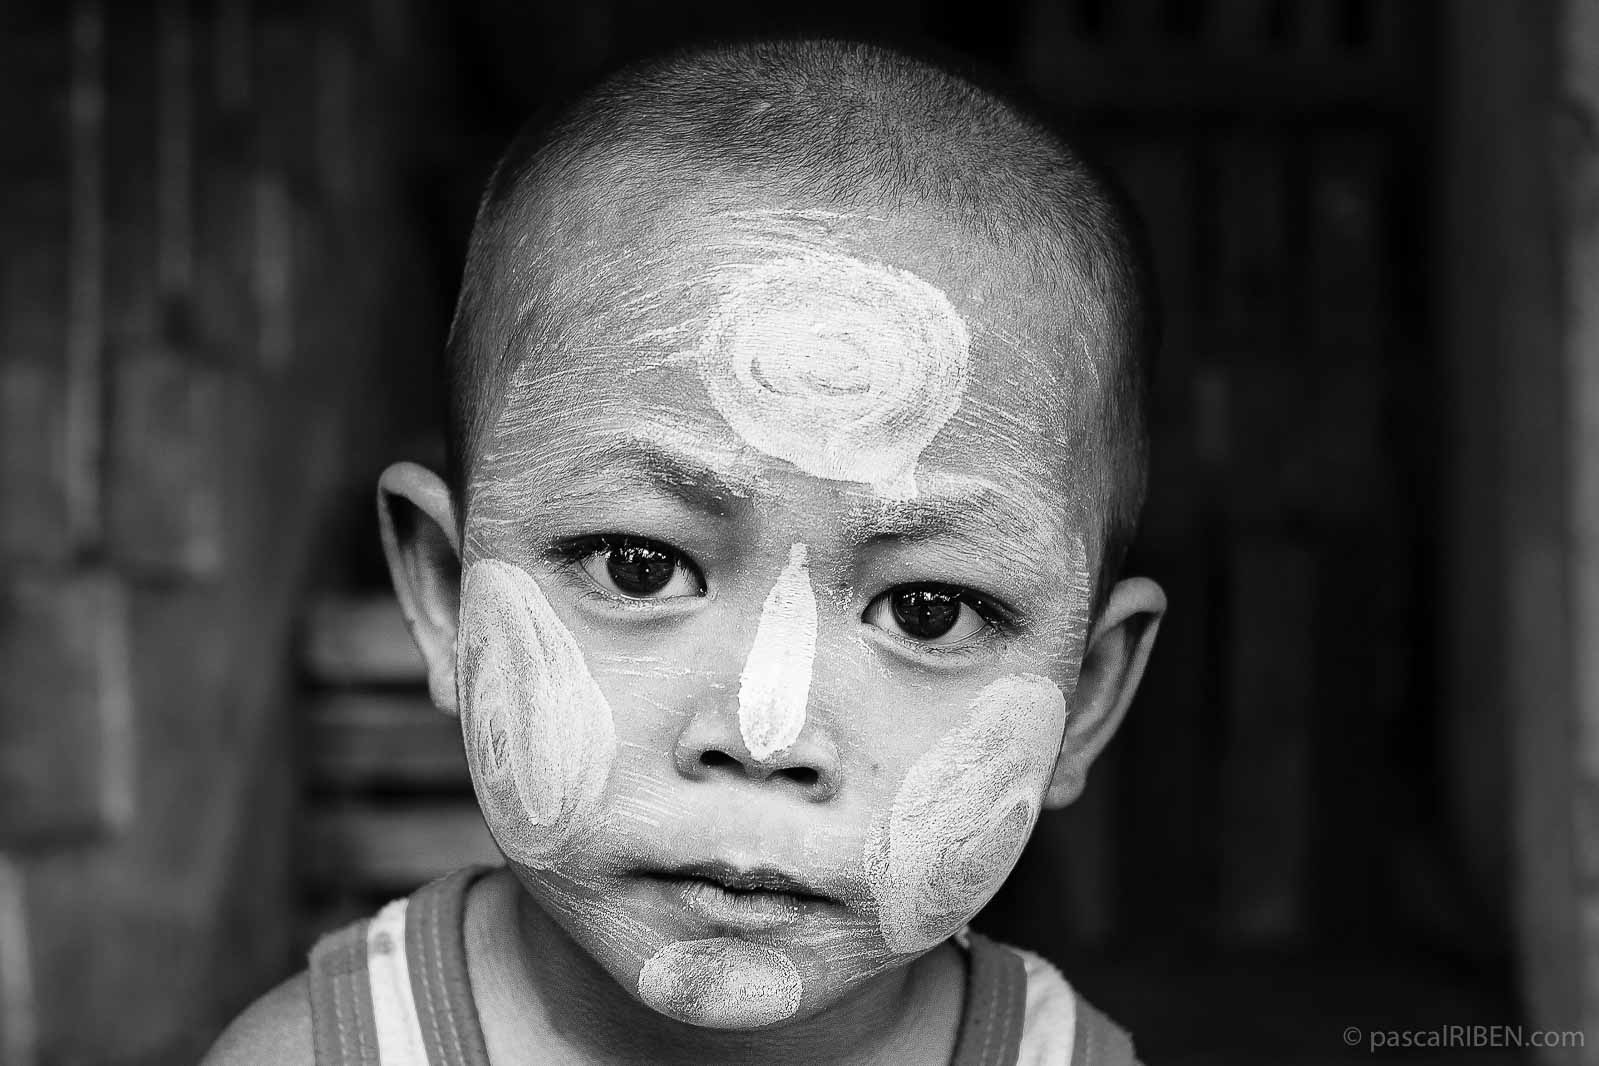 Thanaka on Child Close-up Portrait – Yangon, Myanmar